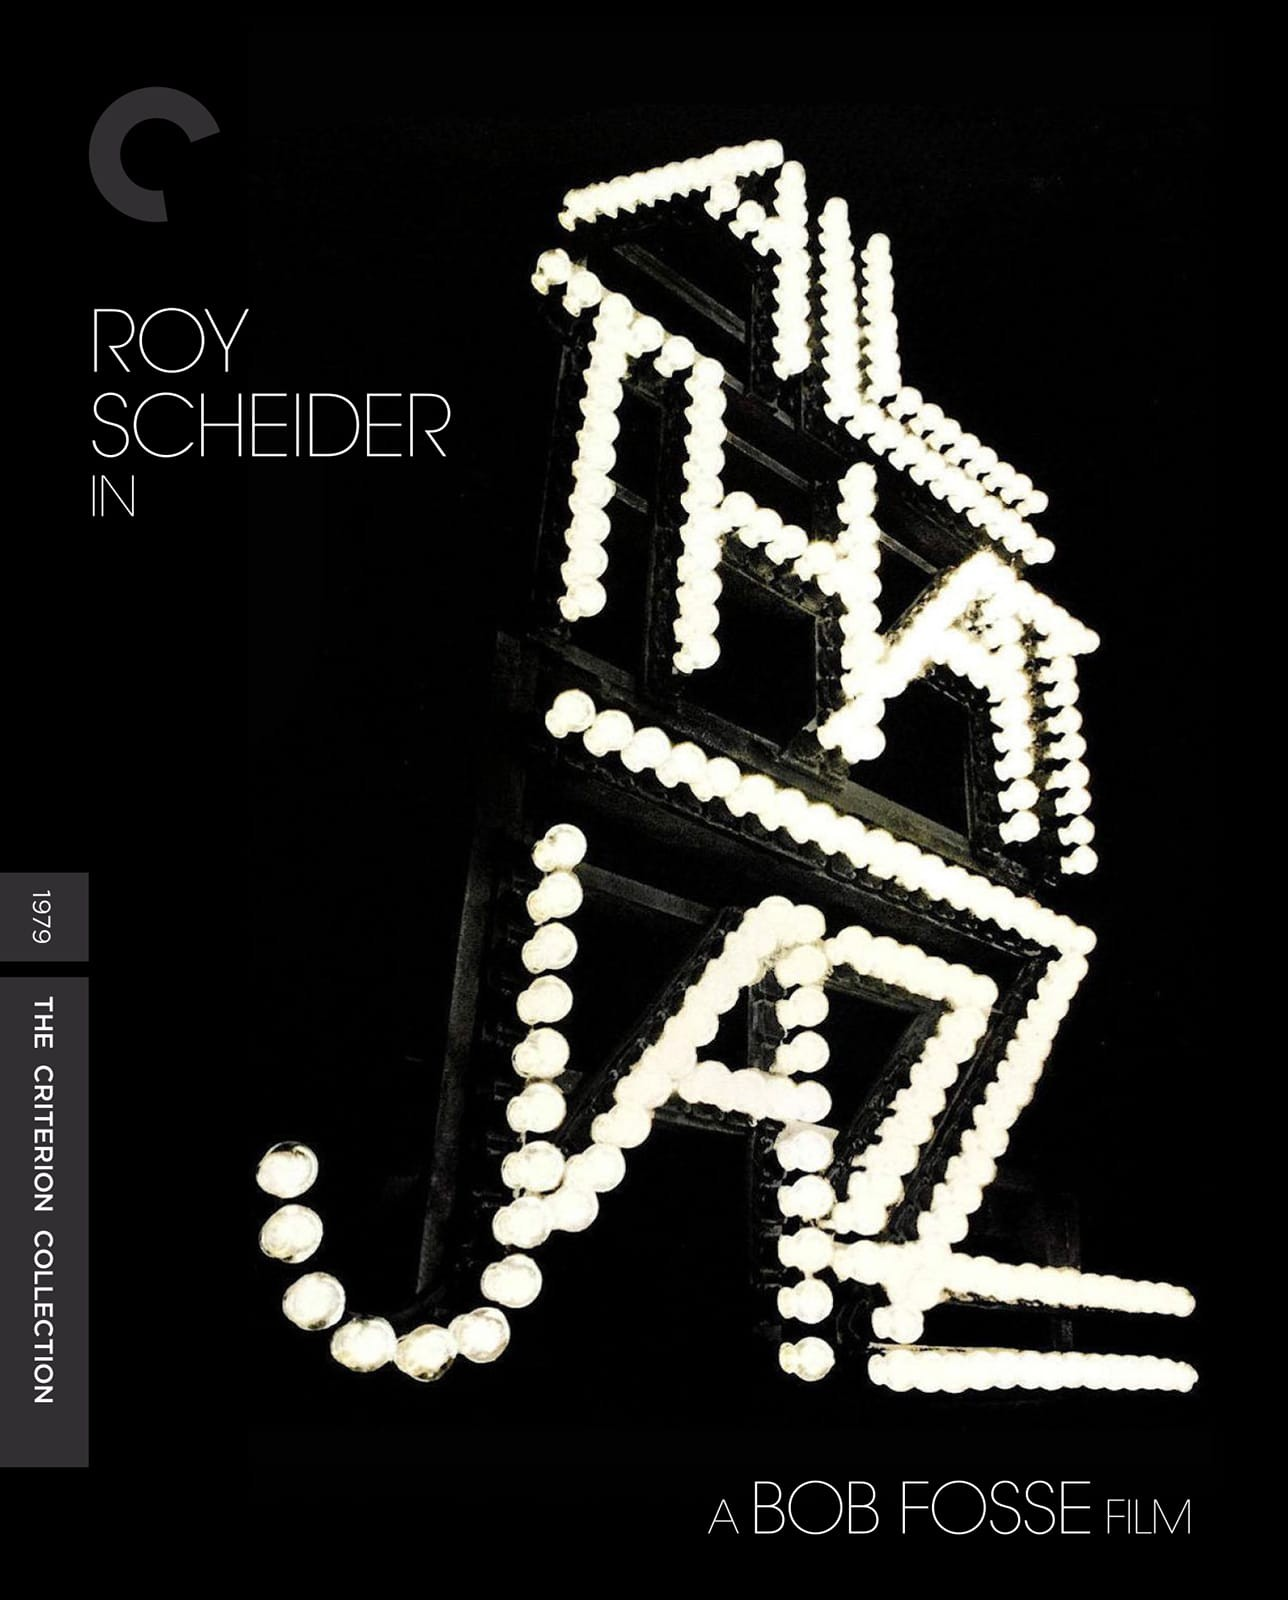 Image result for all that jazz criterion poster